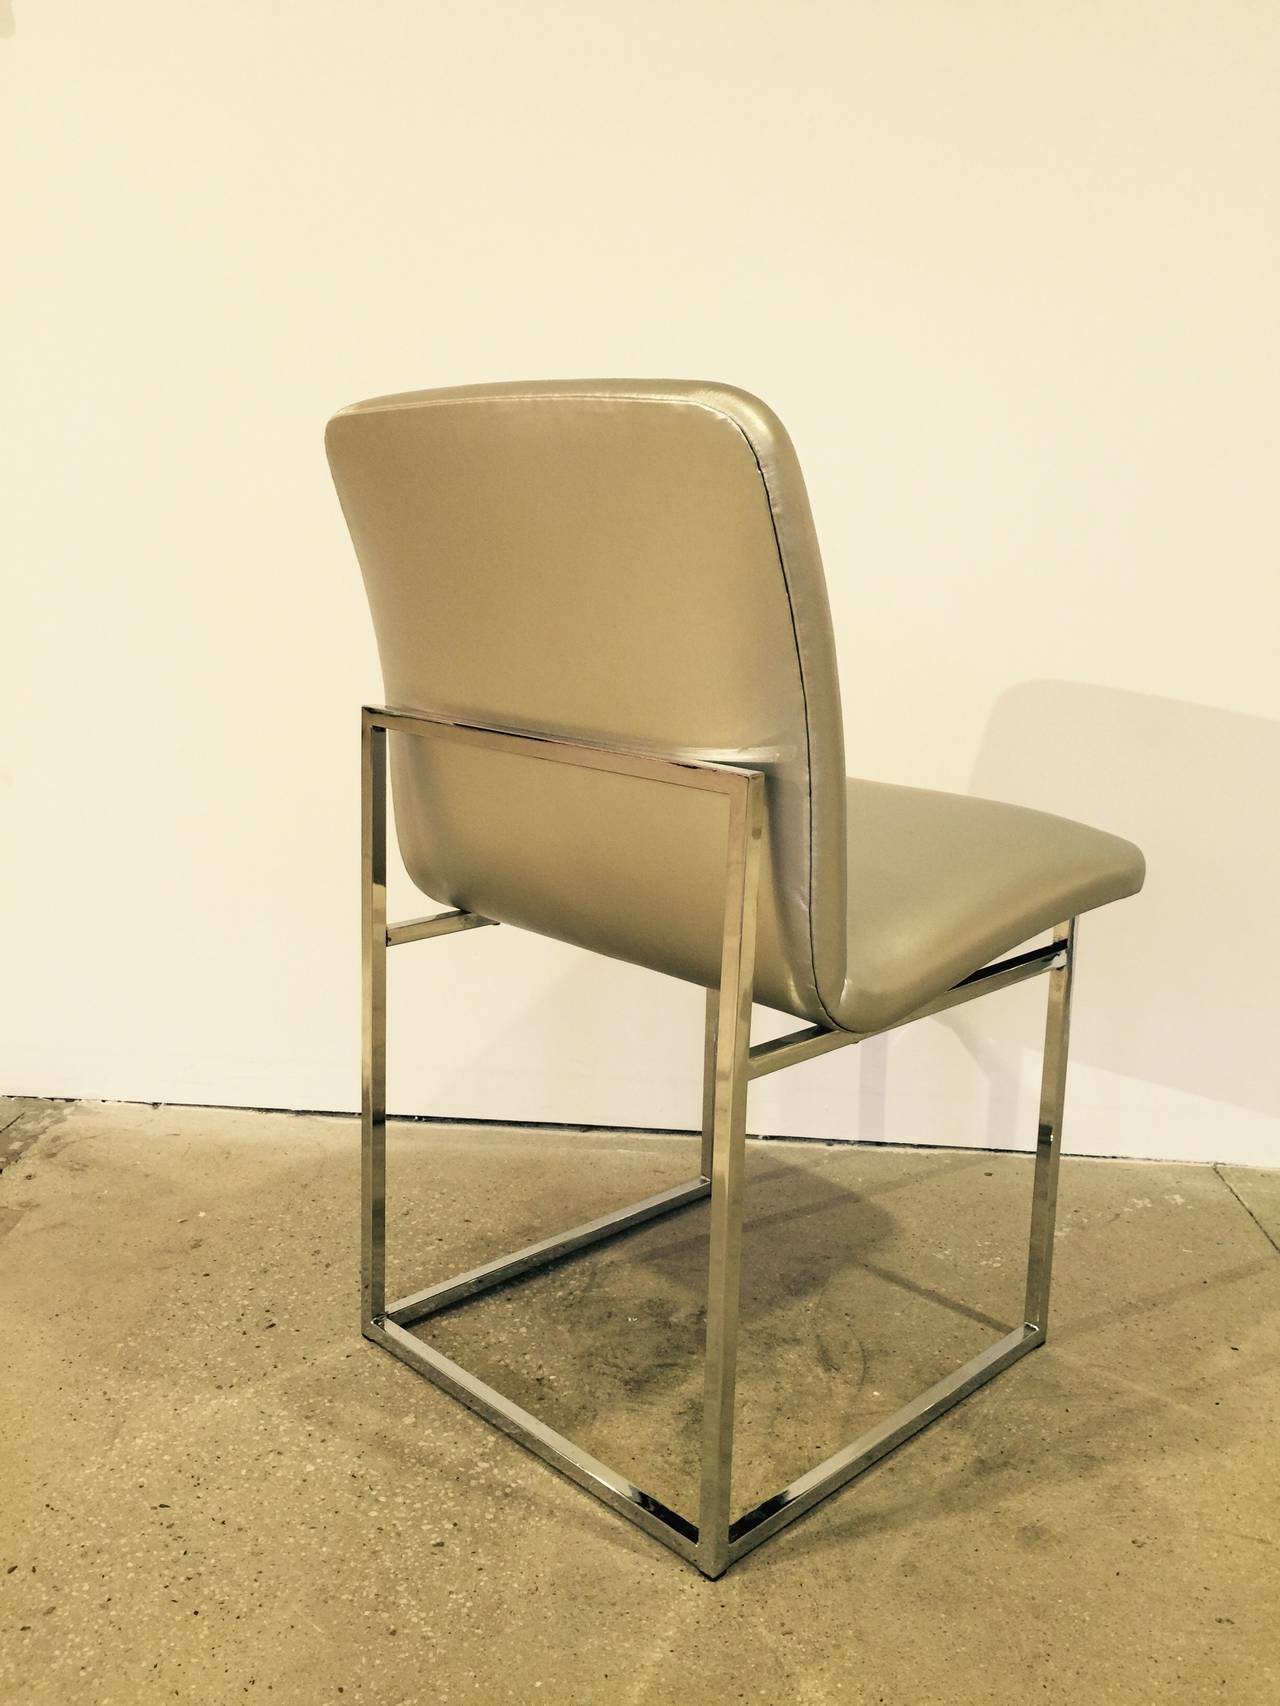 Set of 4 10 Minimalist Dining Chairs by DIA in Silver  : imagel from www.1stdibs.com size 1280 x 1706 jpeg 155kB